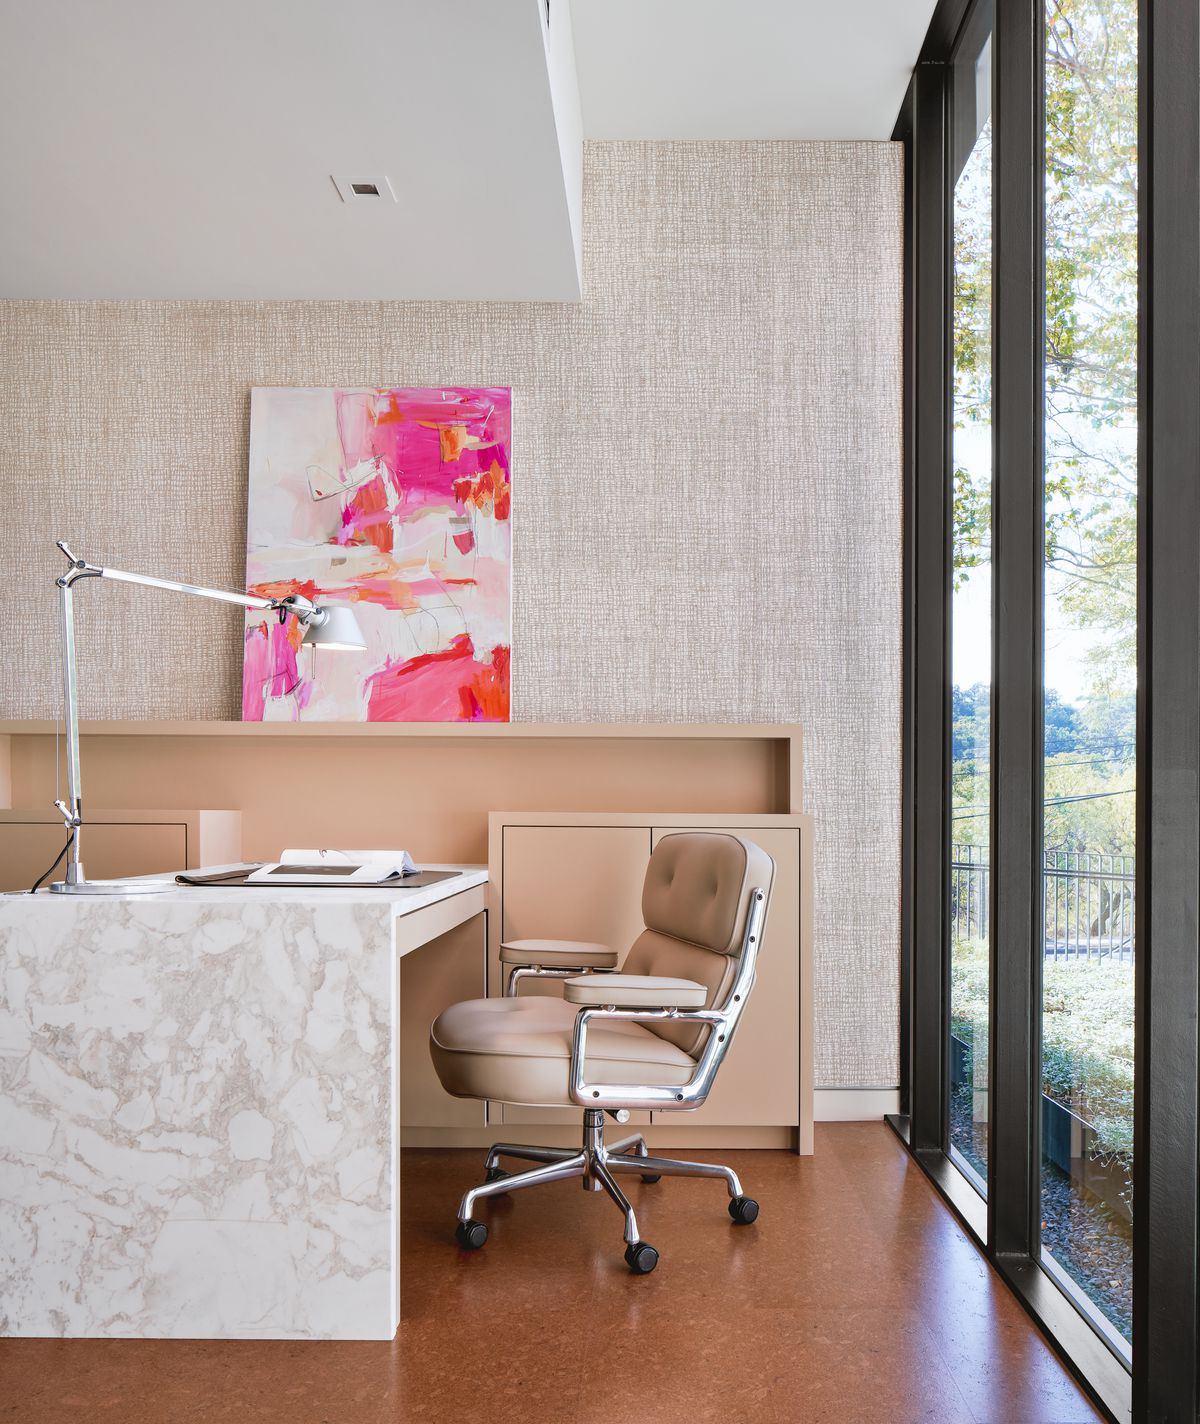 Photo of an office with a textured back wall, a modern credenza and rolling chair, and a rectangular desk extending to the credenza. There are floor-to-ceiling windows on the right size. There's a stainless steel task light on the desk and a painting propped on the credenza.